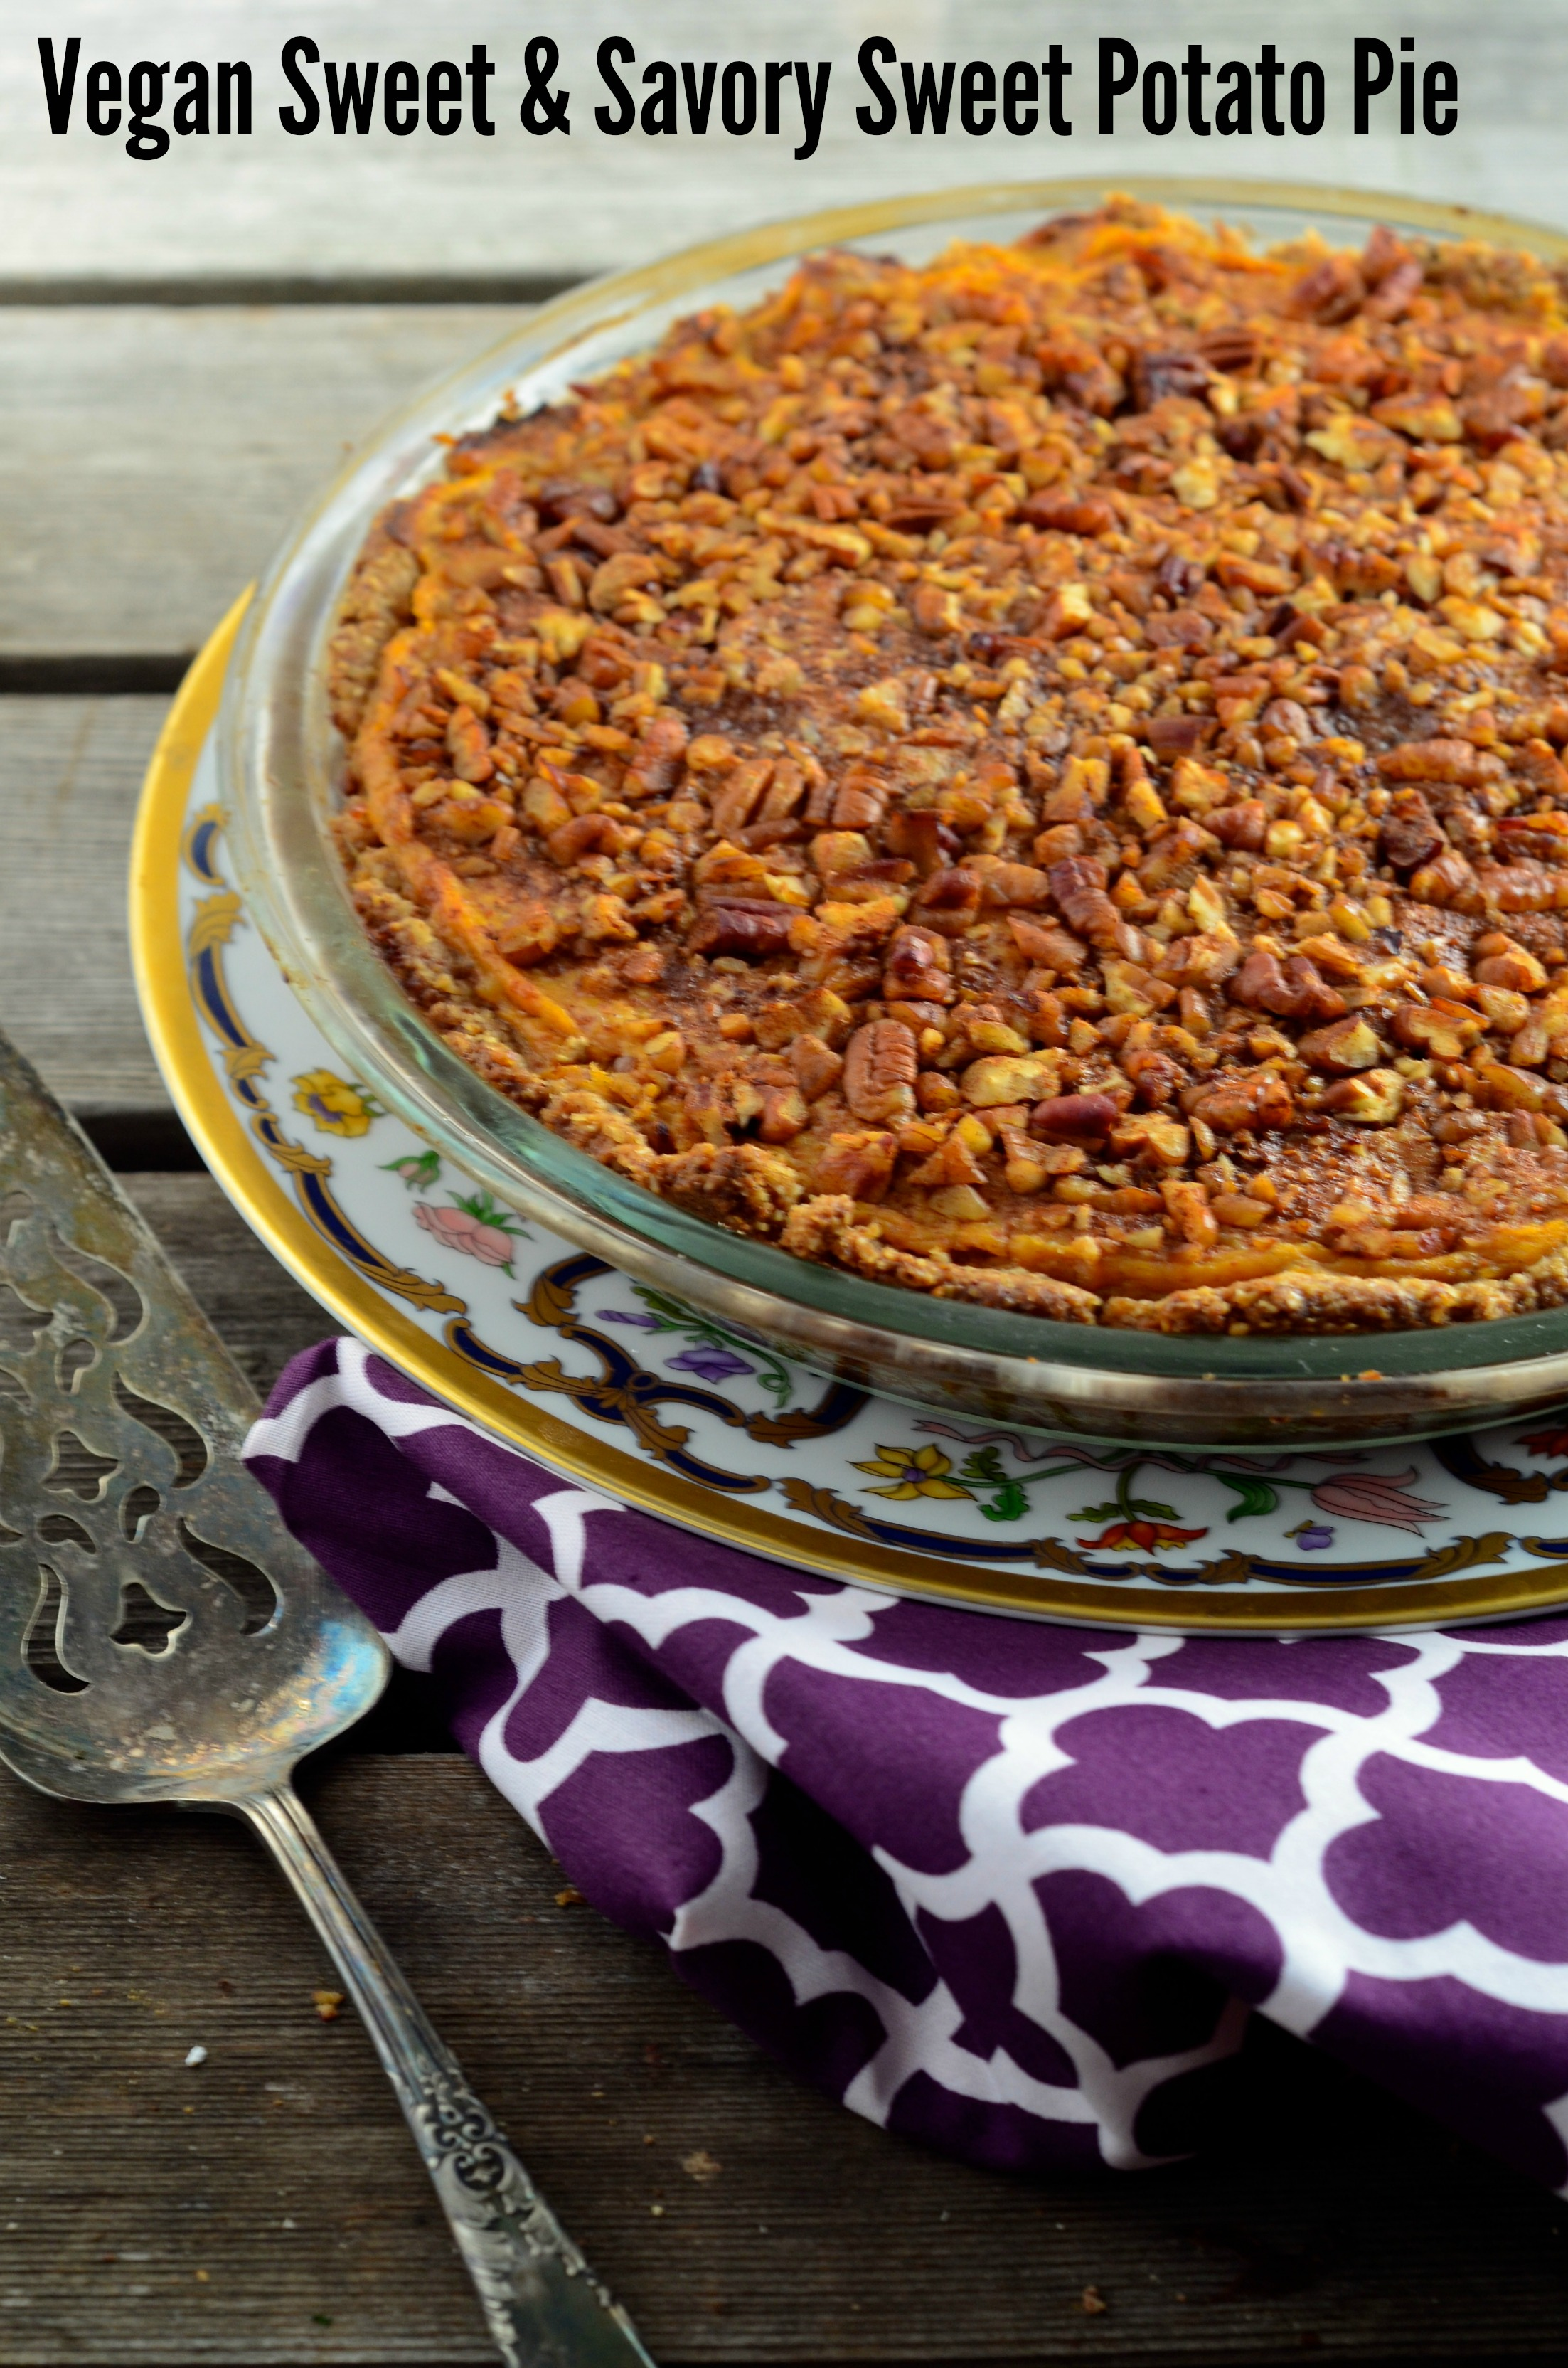 Vegan Sweet & Savory Sweet Potato Pie (Gluten Free)